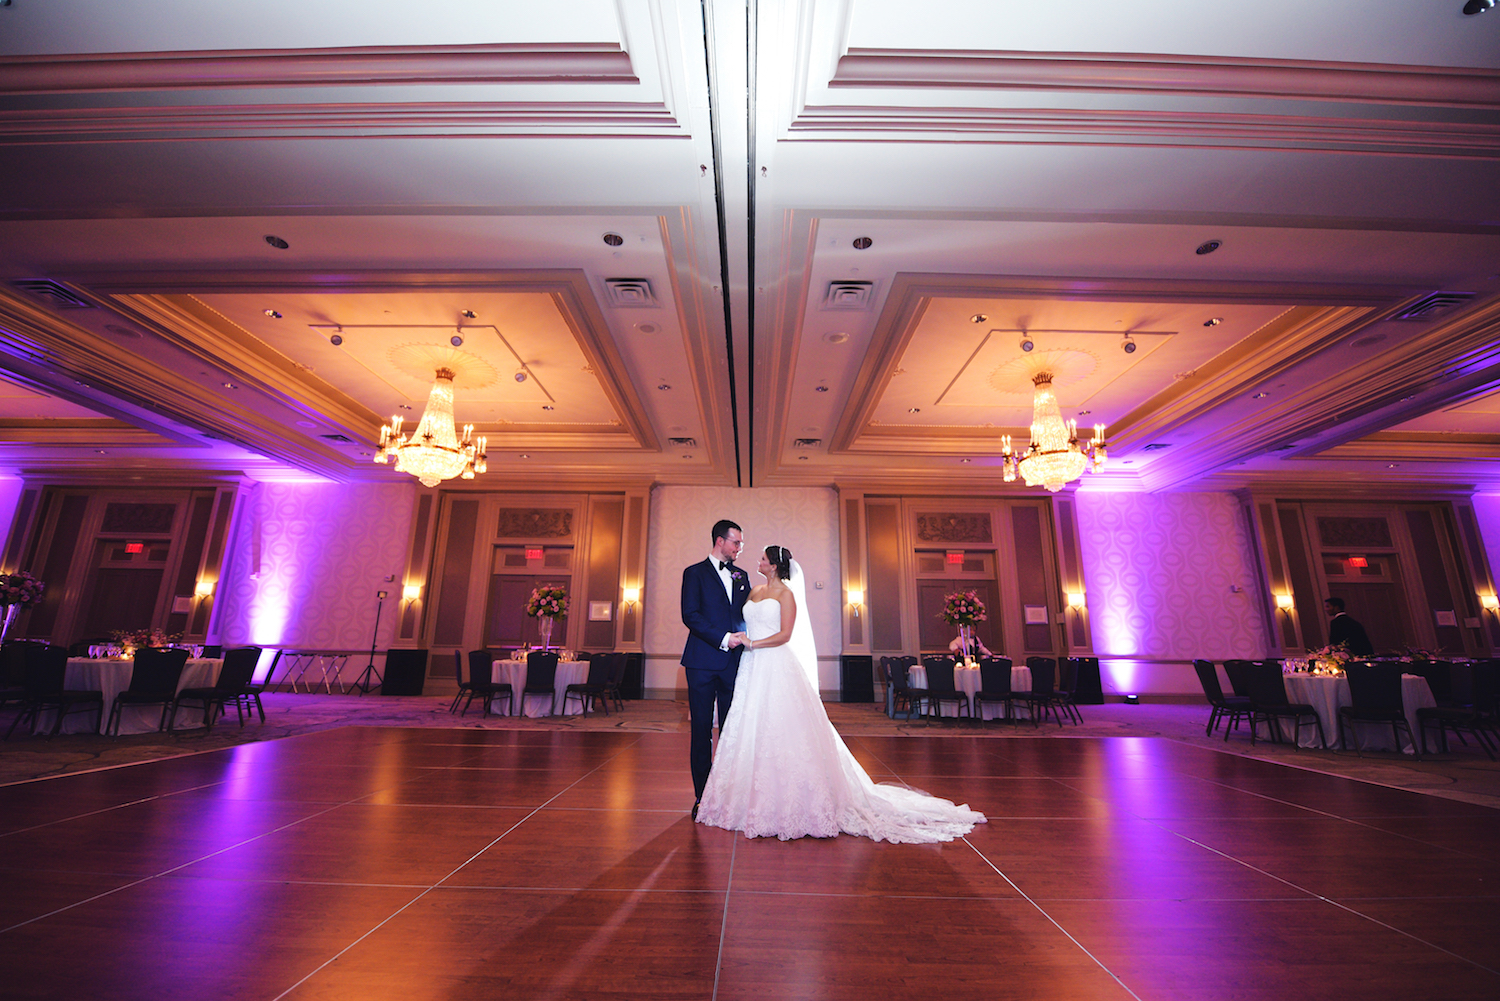 mike&samantha-embracing-on-empty-dance-floor-ballroom-wedding-photography-nj